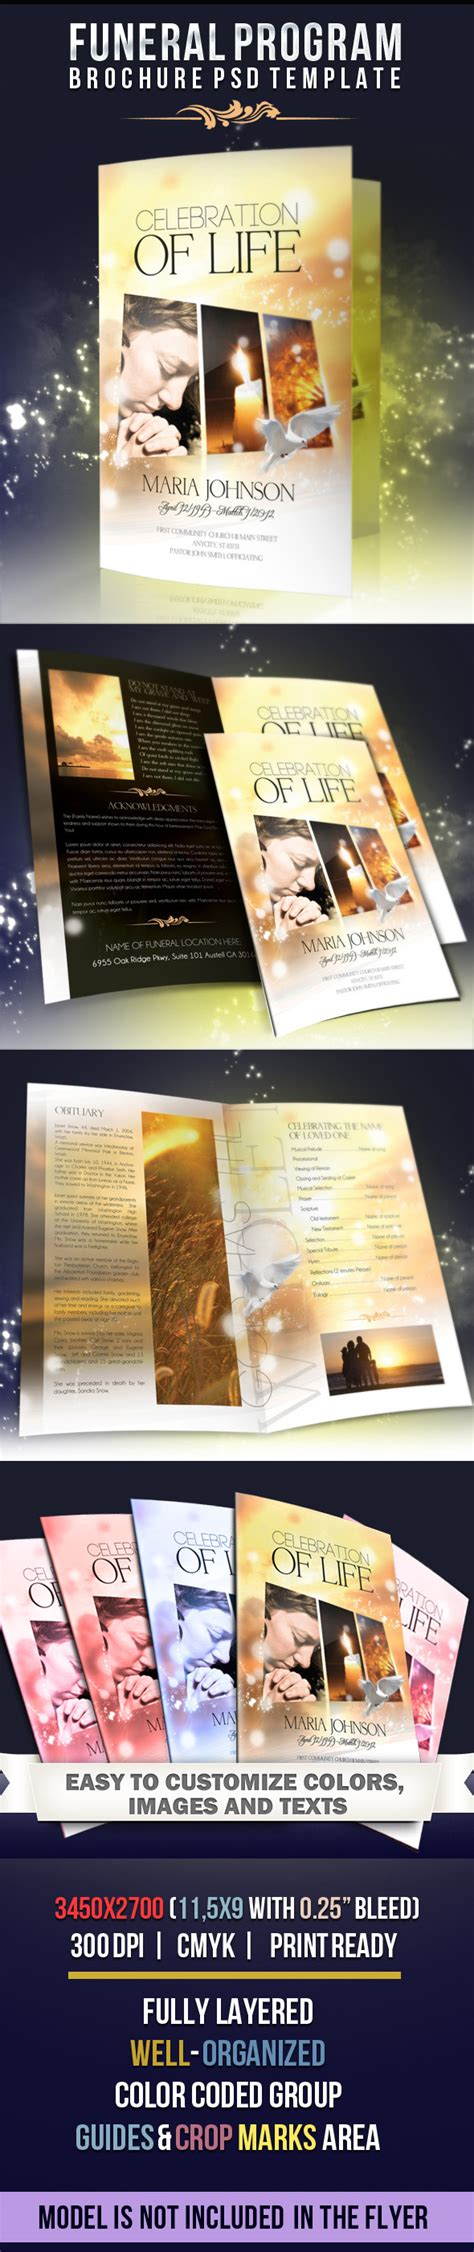 funeral program brochure template celebration of life